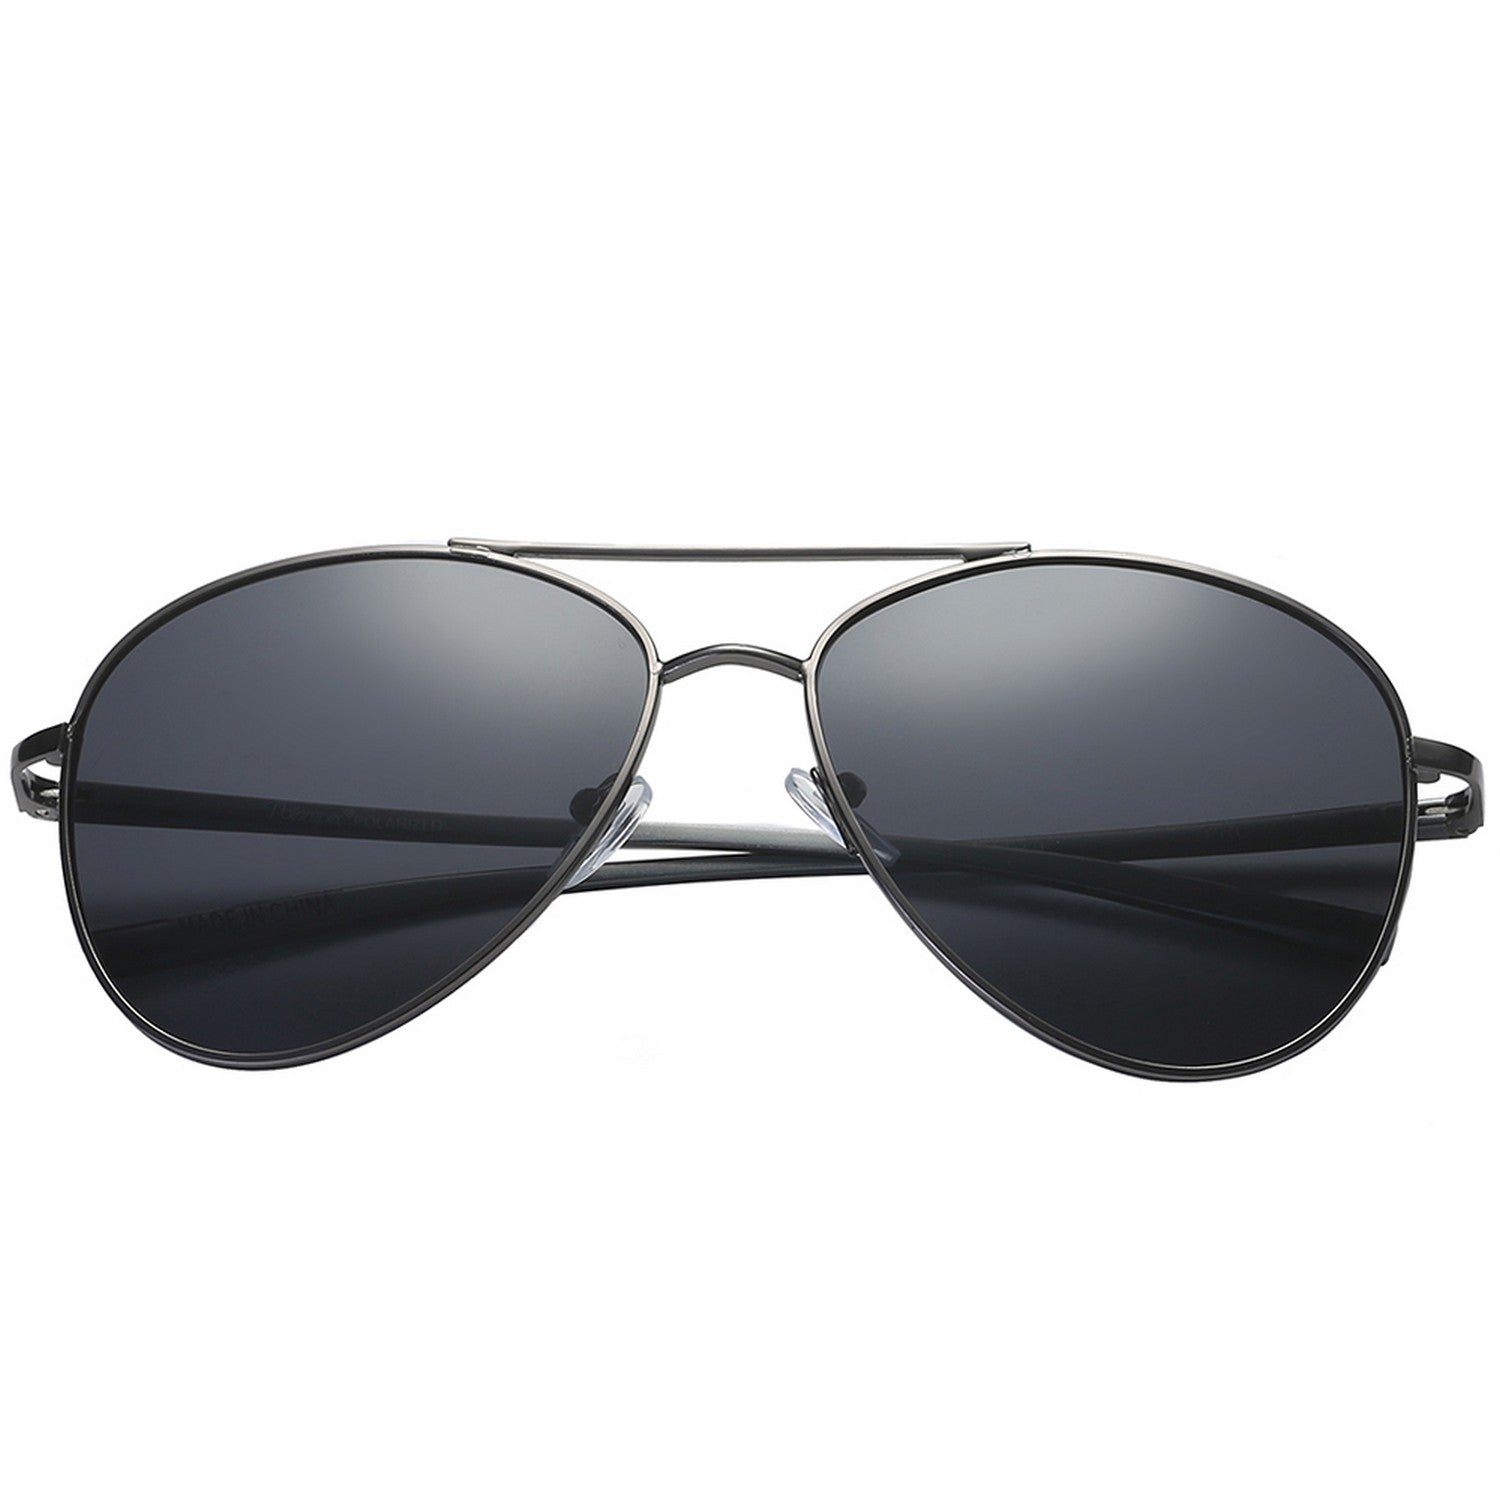 Polarspex Polarized Aviator Style Sunglasses with Aluminum Pewter Frames and Polarized Smoke Lenses for Men and Women